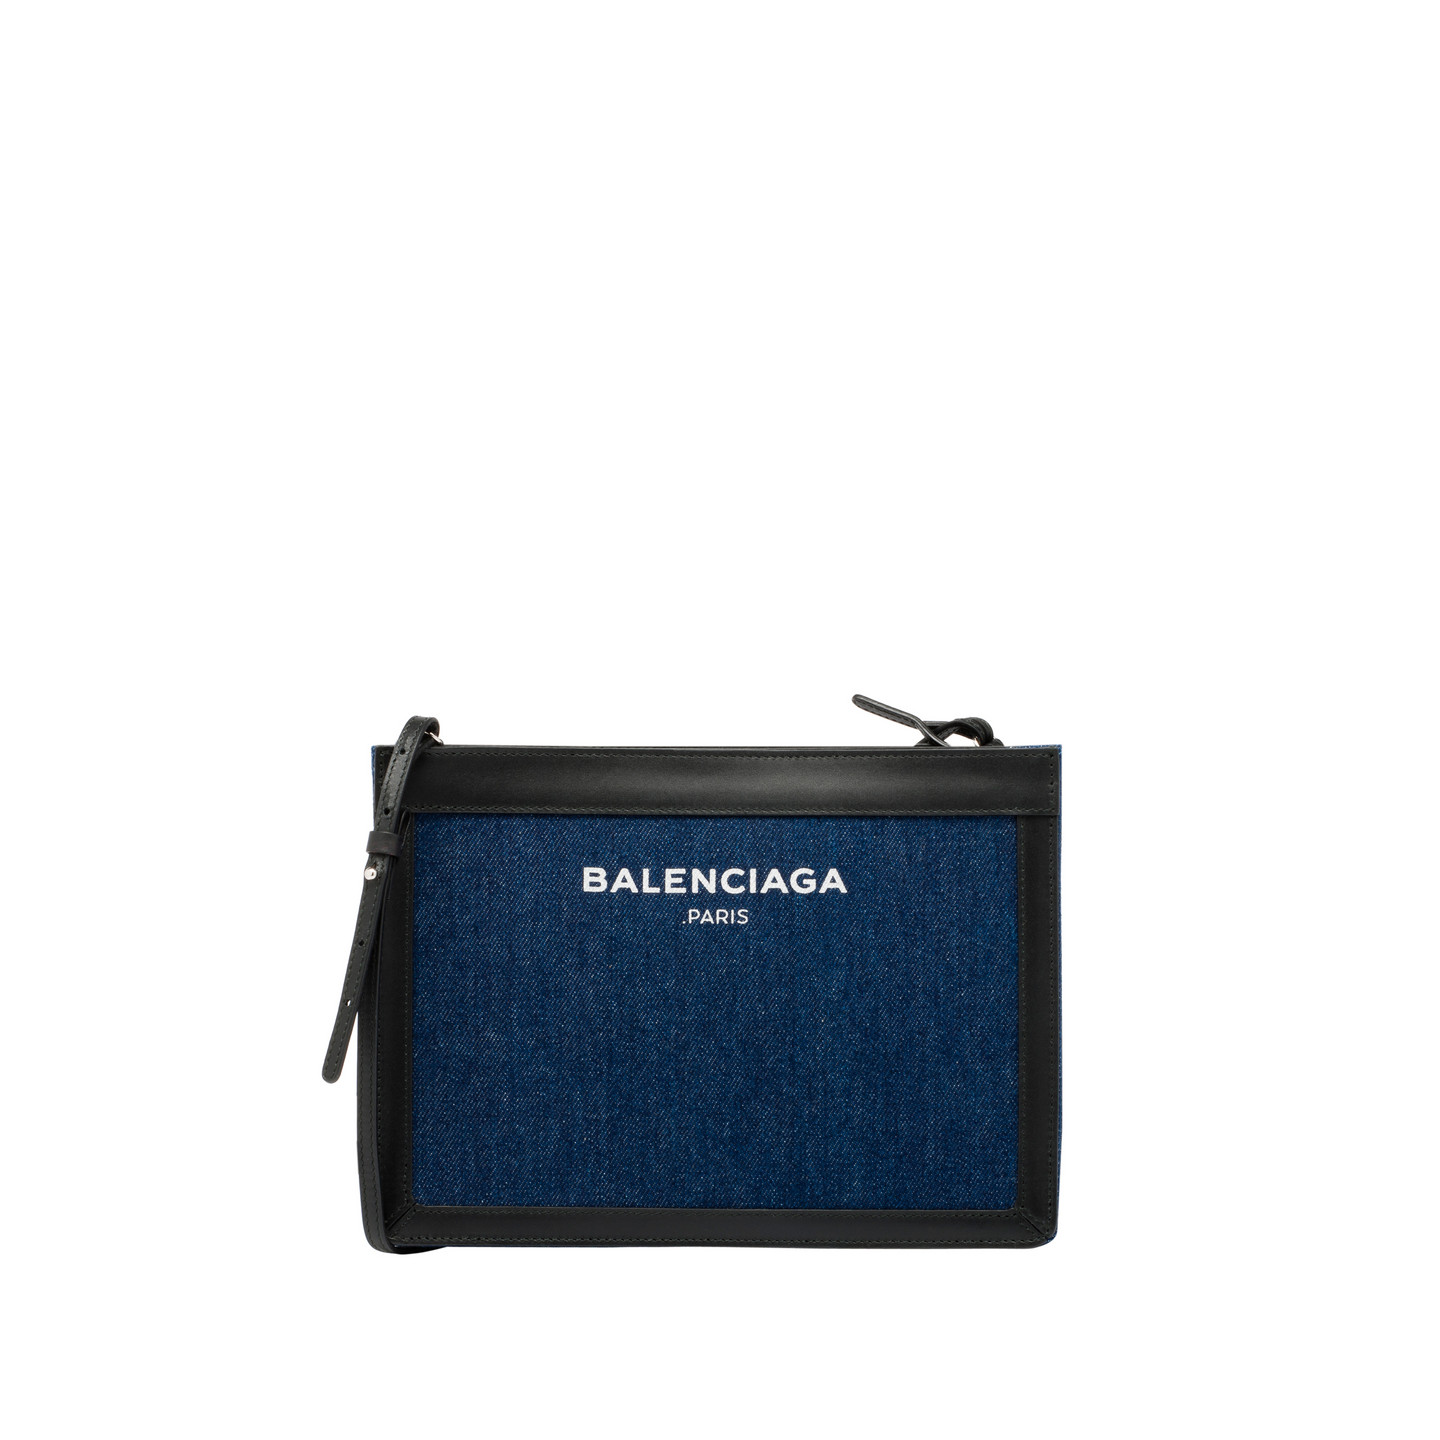 241d34eba7 balenciaga leather clutch. Designer Handbags for Women - Balenciaga